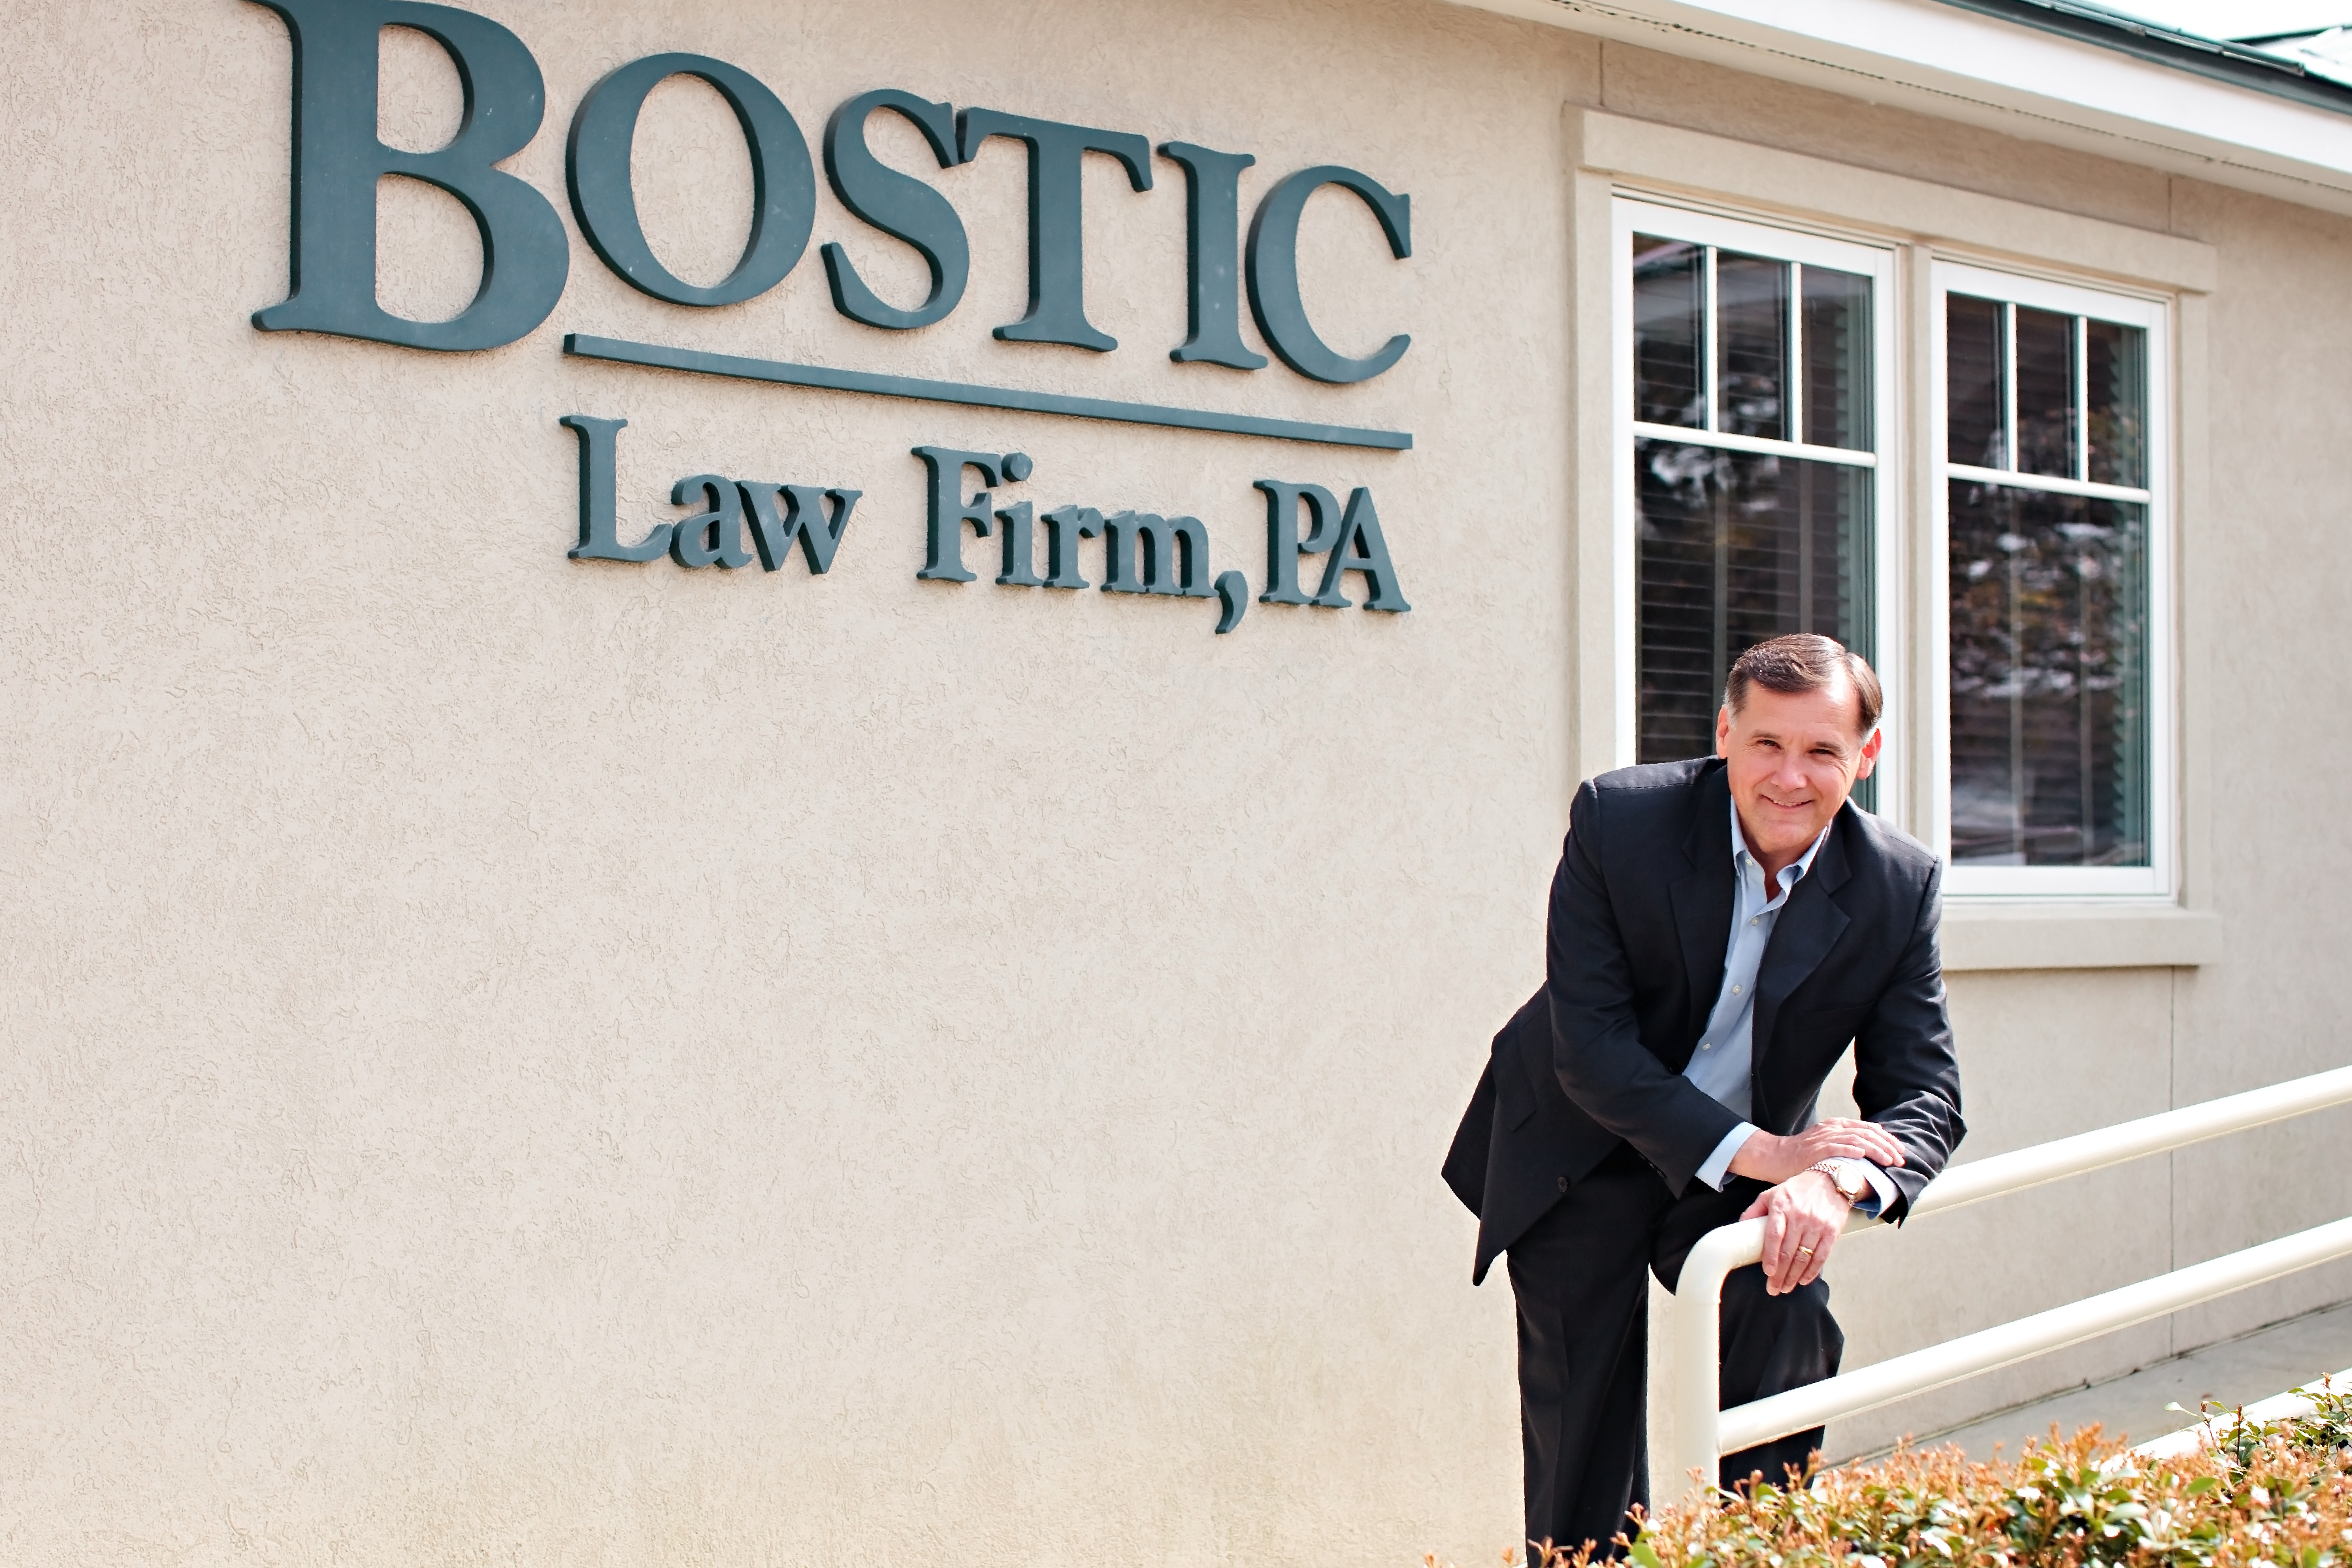 Bostic Law Firm PA